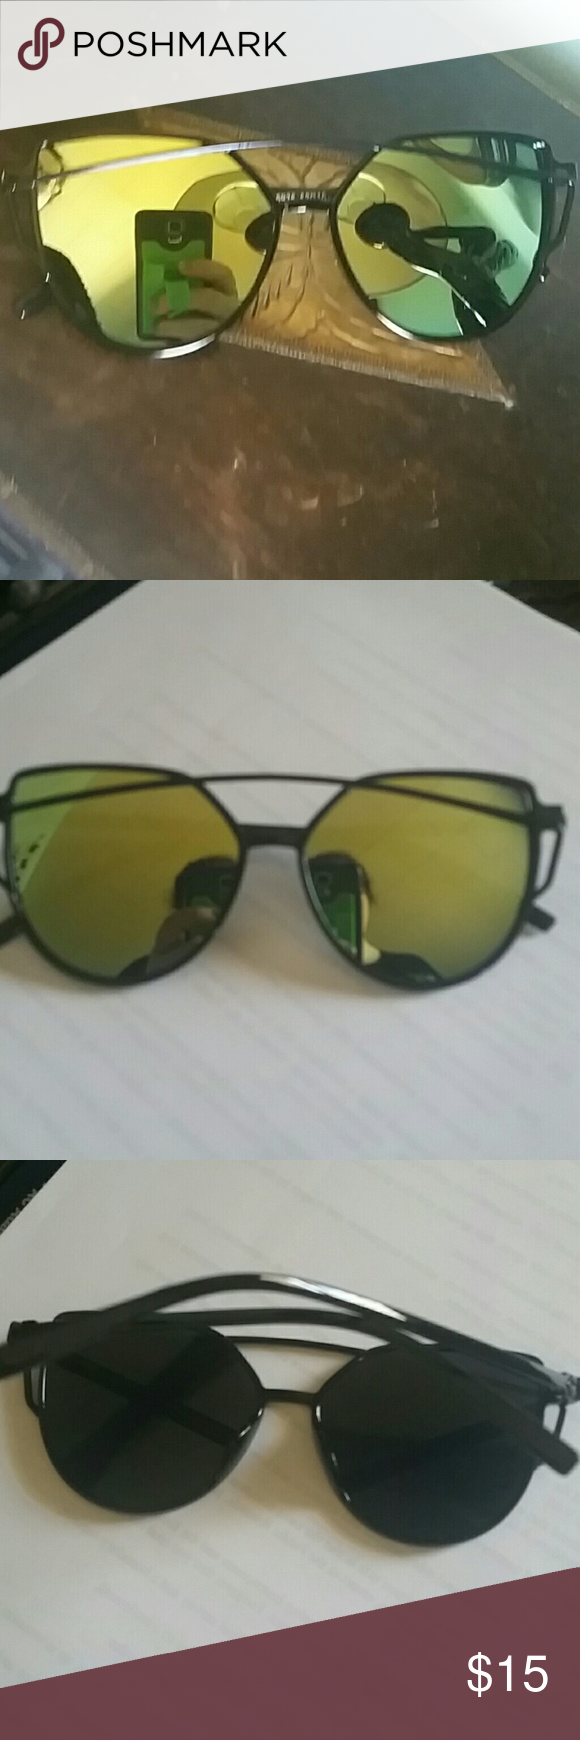 Green Mirrored Aviators Green and blue hued mirror aviator sunglasses.  Black plastic frame looks like wire. So trendy! Perfect sunnies for a spring wardrobe. coleyroleypoley Accessories Sunglasses